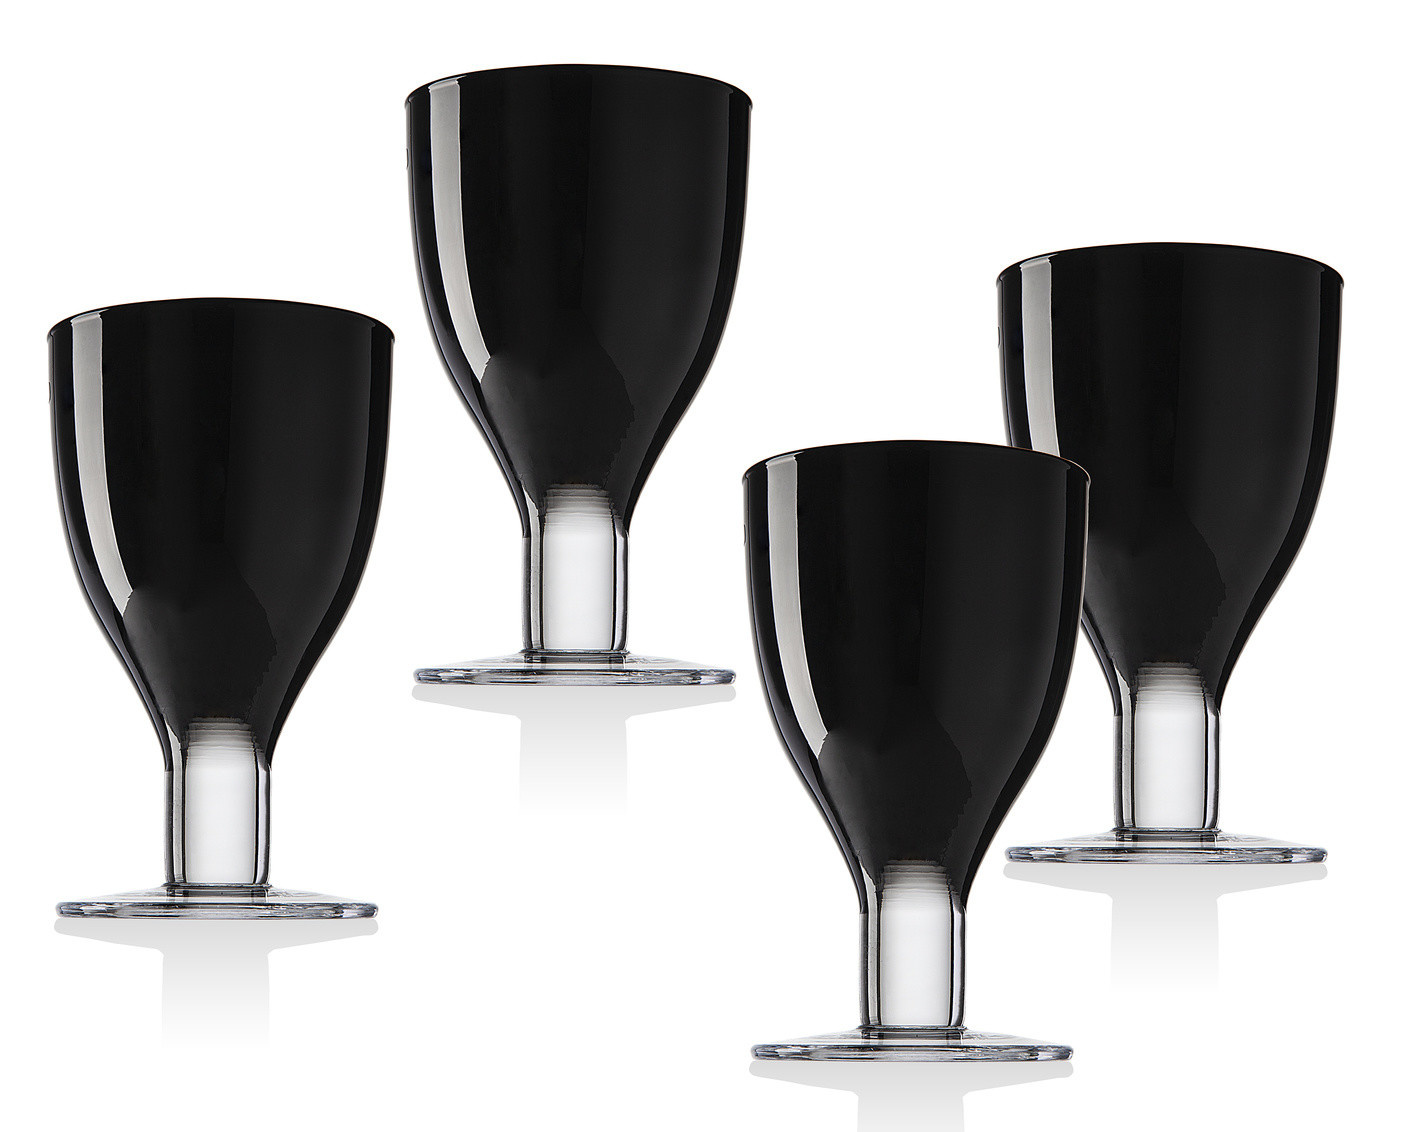 Galley Black Goblets S/4